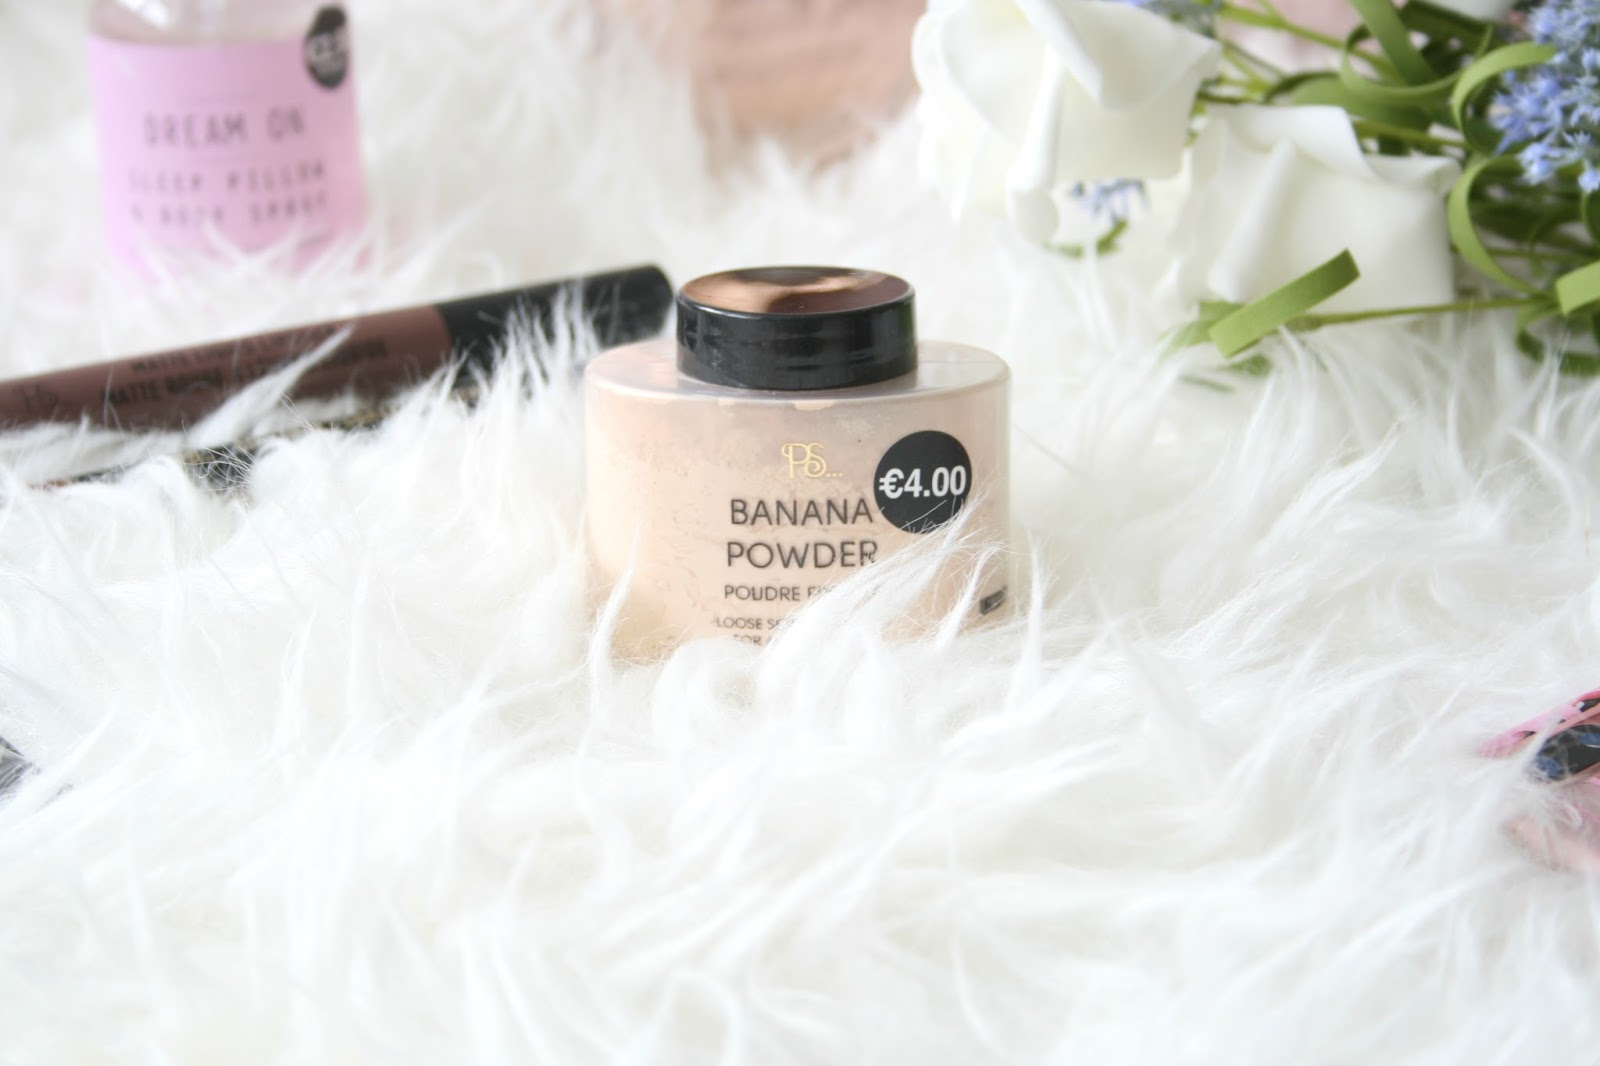 Primark Banana Powder